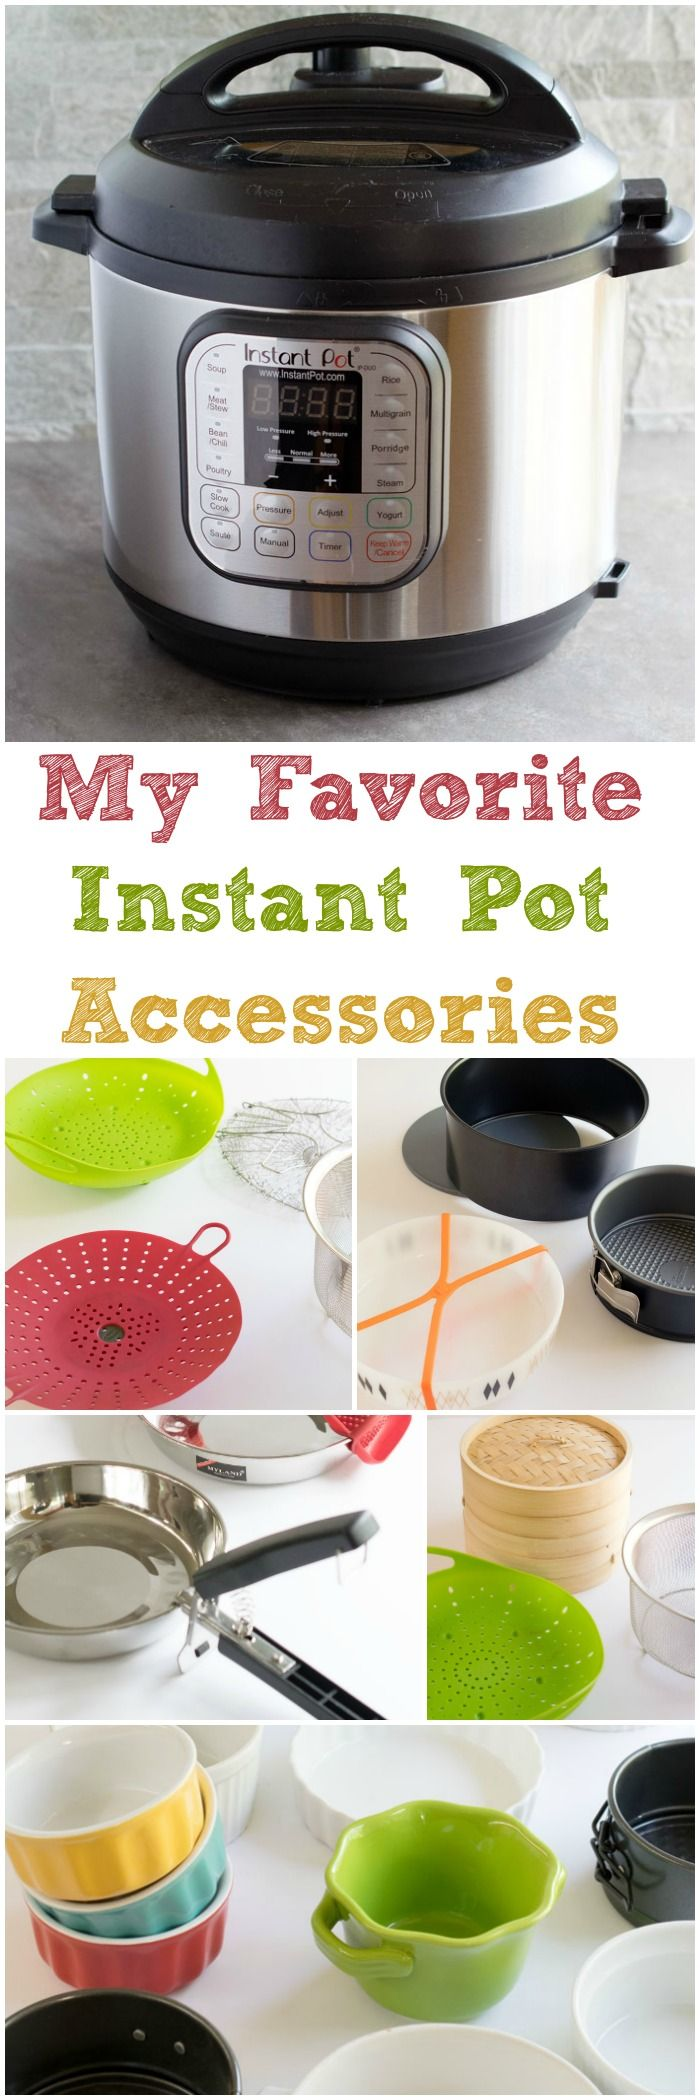 I'm sharing my favorite Instant Pot Accessories. They will help you squeeze lots of use from your Instant Pot.